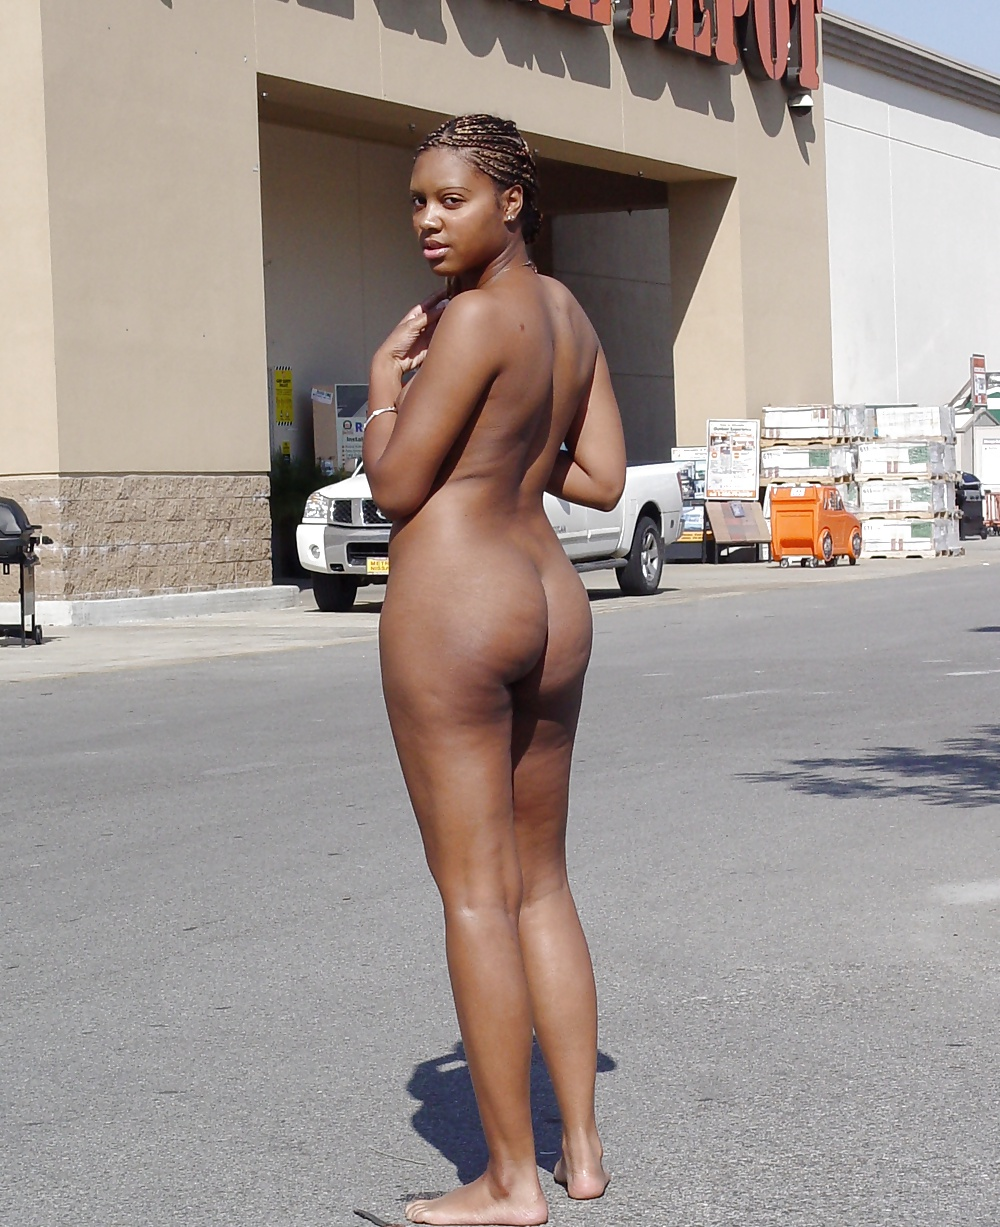 Black girls and naked in public